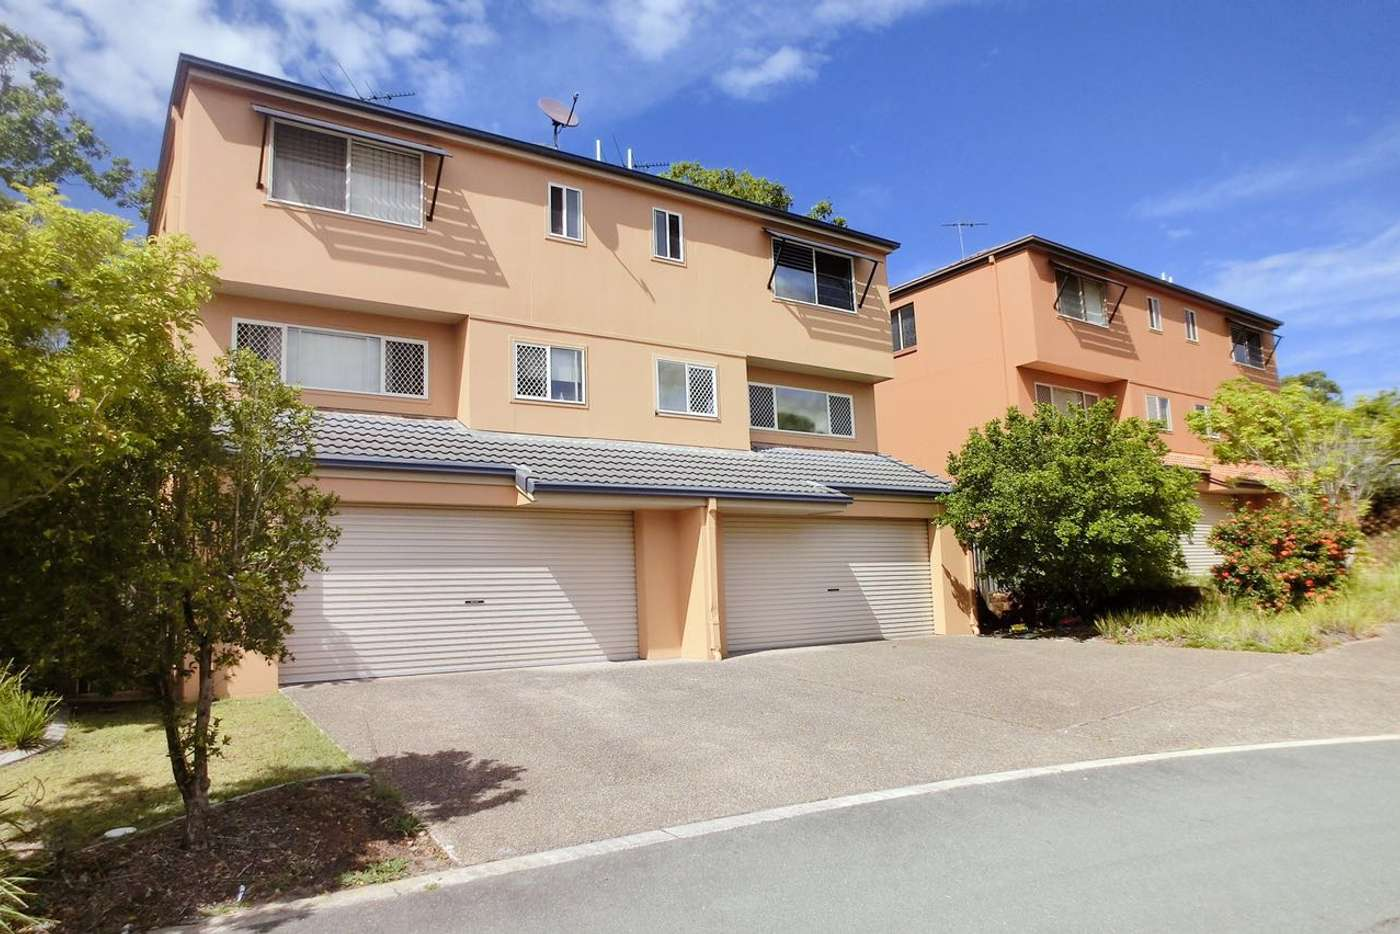 Main view of Homely townhouse listing, 9 San Mateo Blvd, Eight Mile Plains QLD 4113